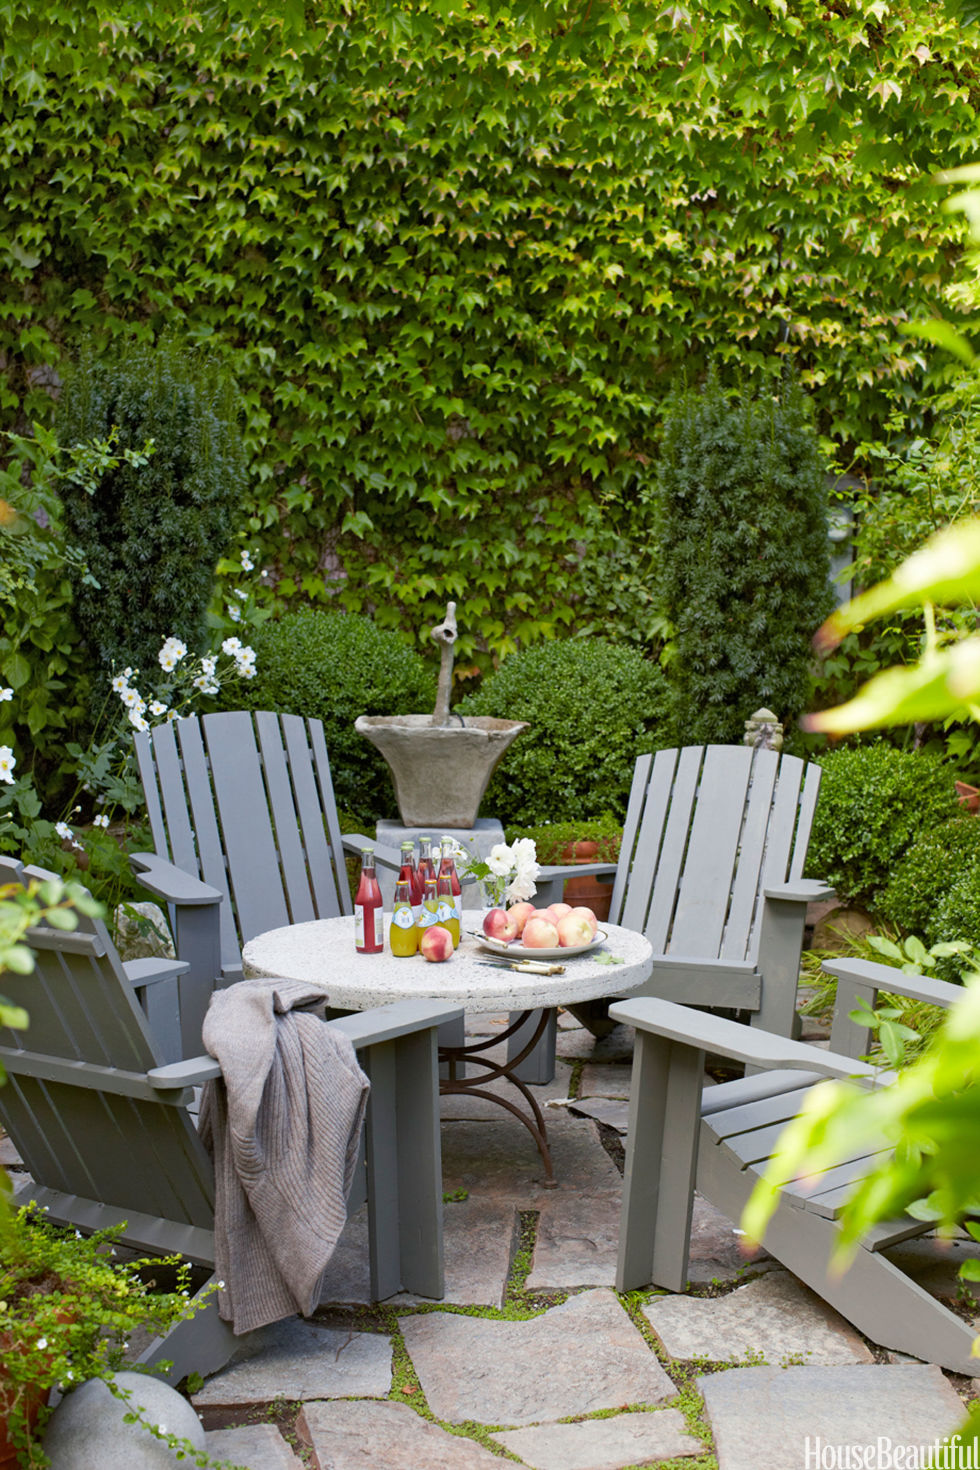 10 outdoor decorating ideas - outdoor home decor